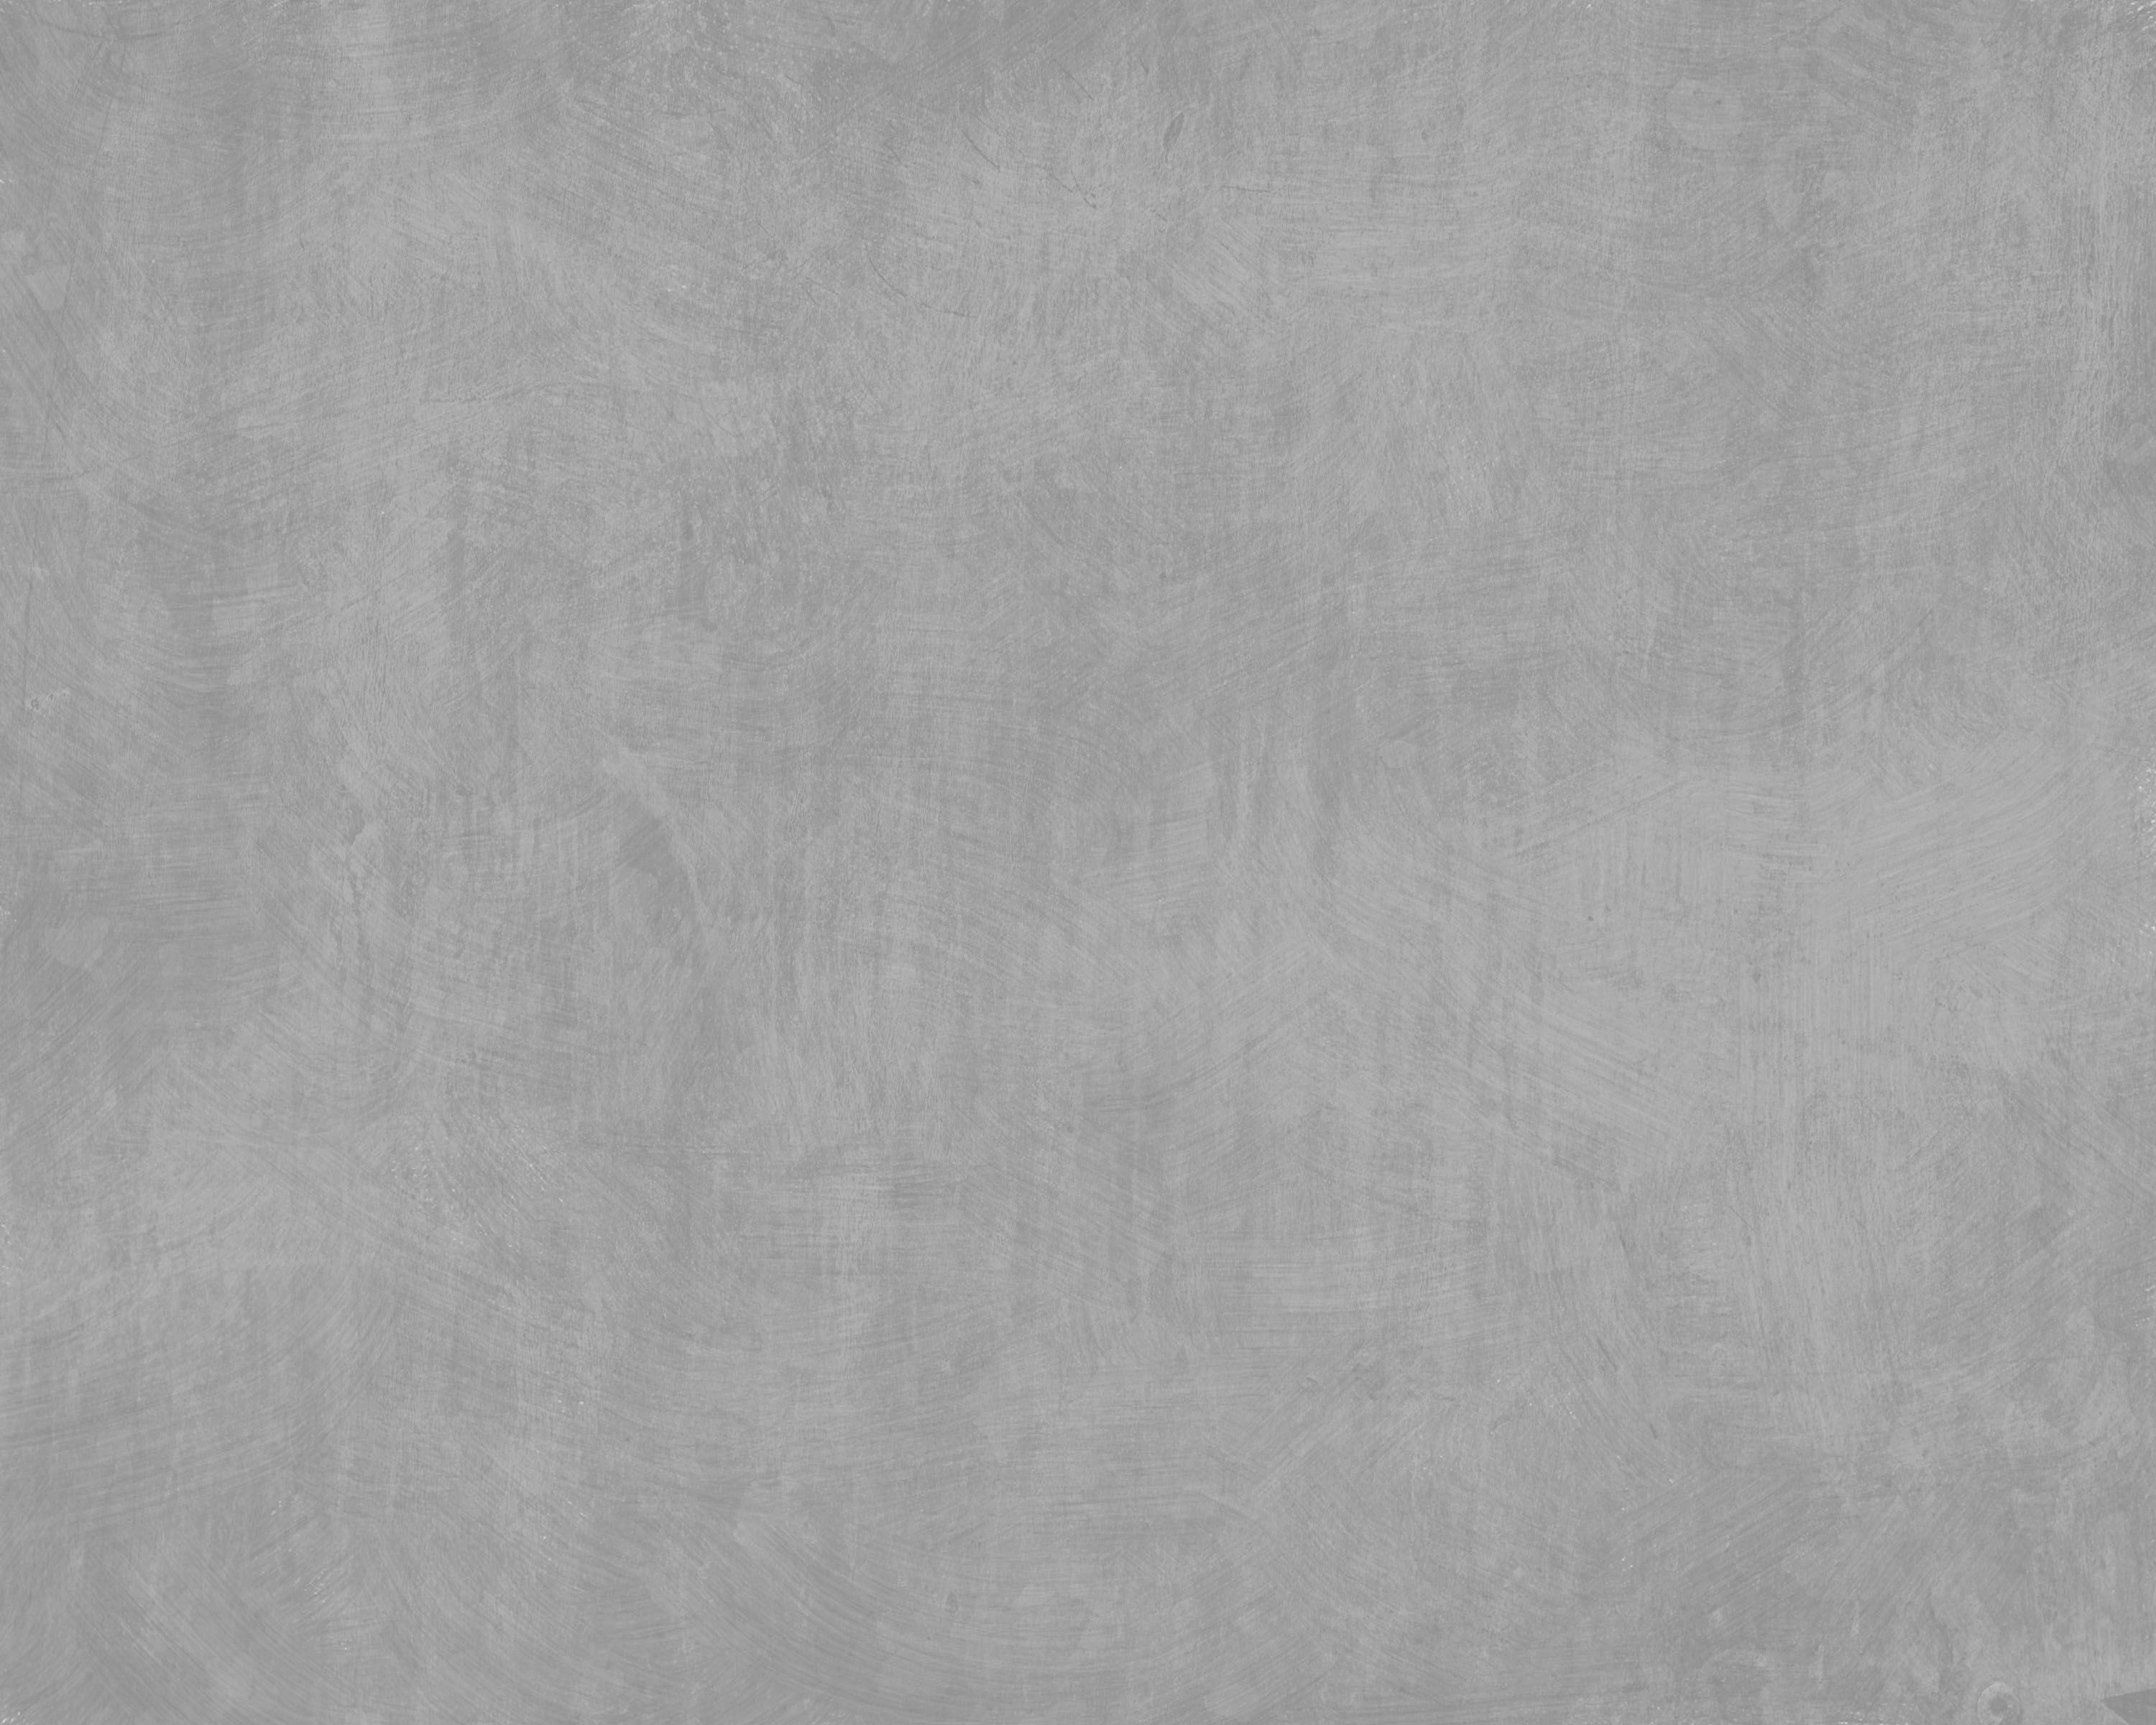 Grey paint texture bing images texture details for Texture paint images